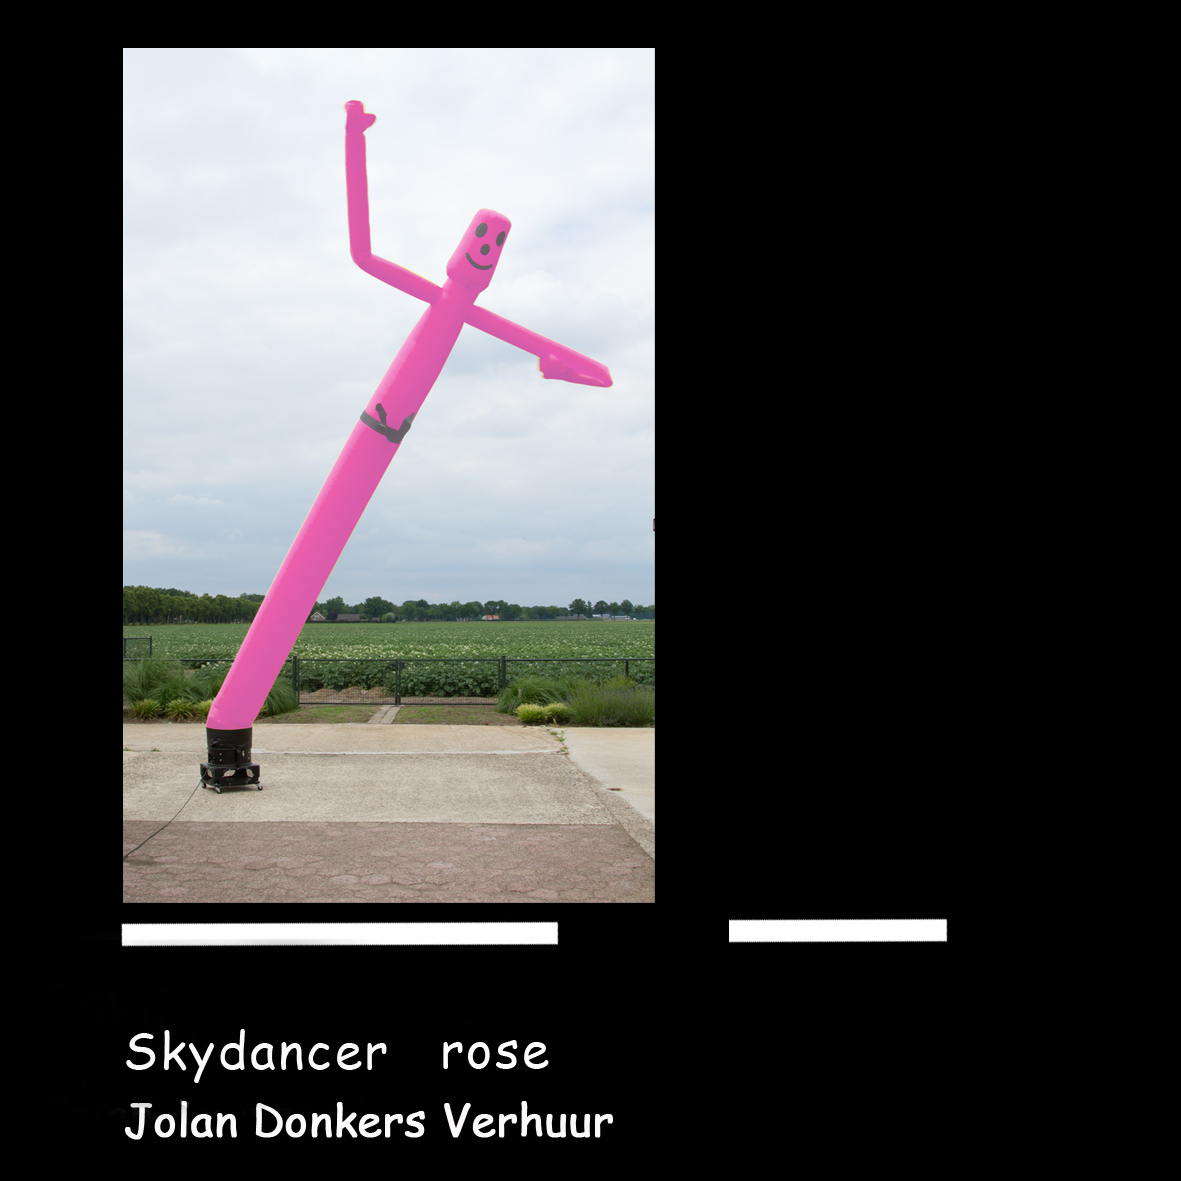 skytube rose 1